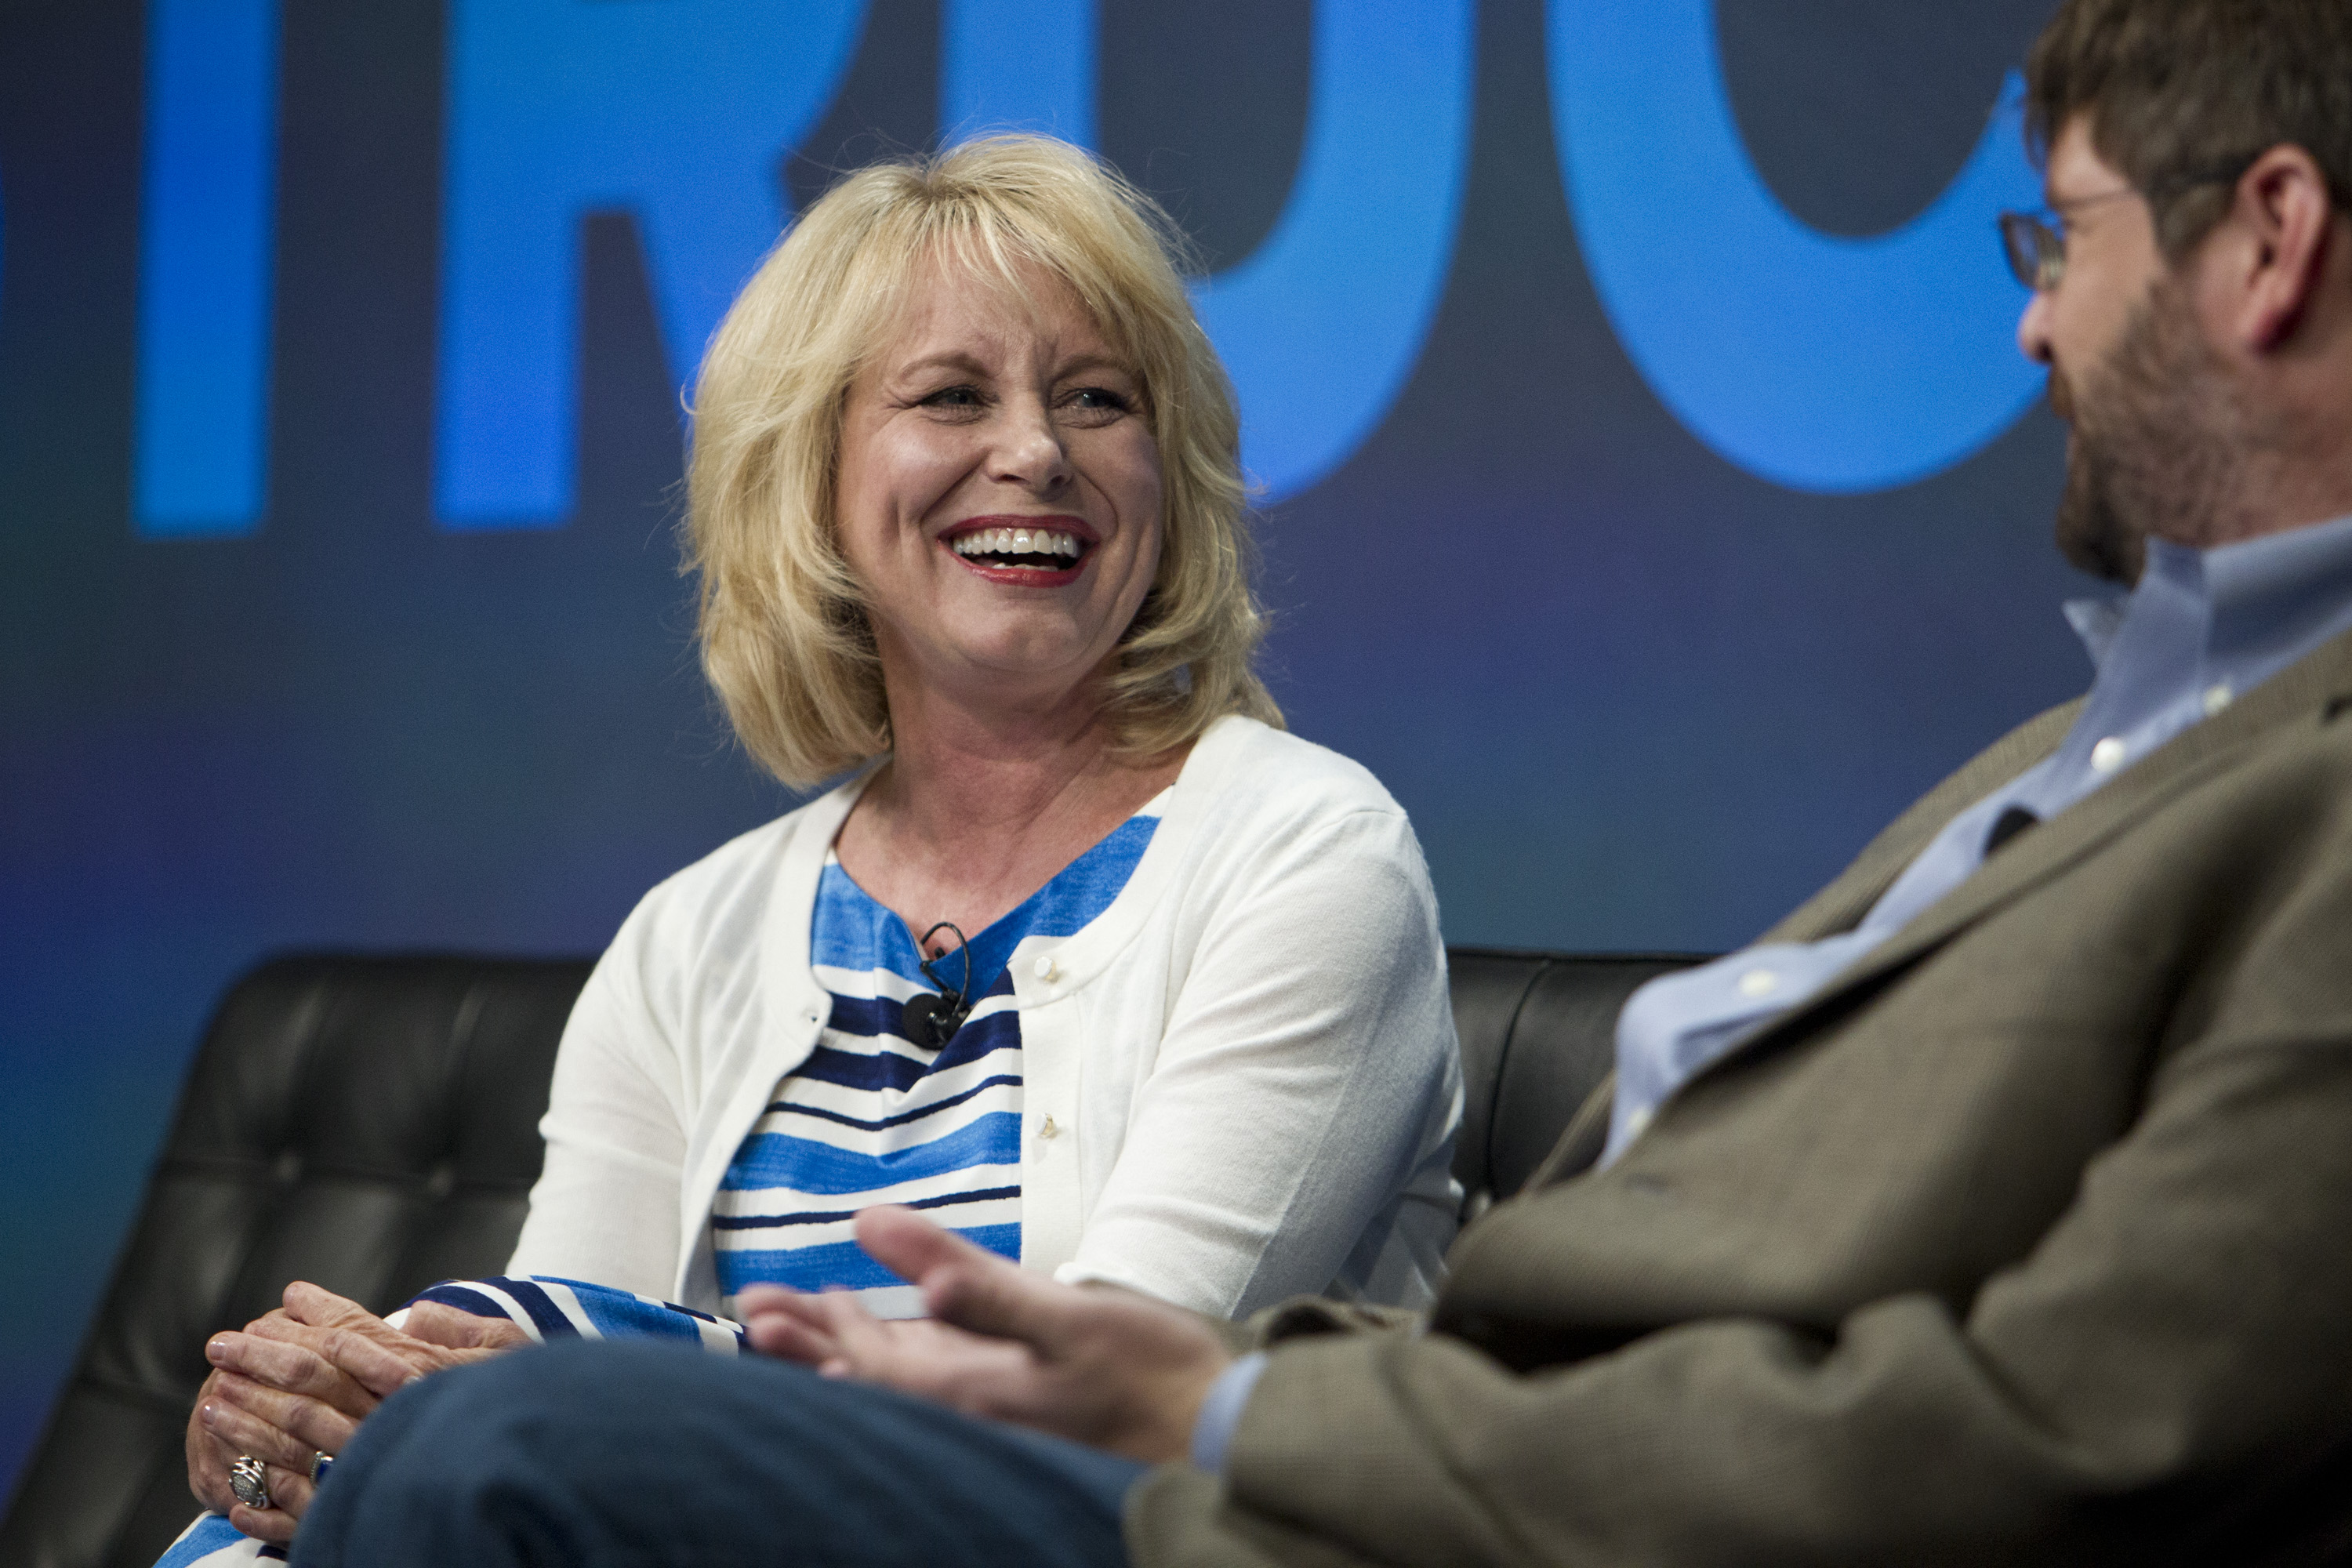 Diane Bryant, senior vice president and general manager of Intel's Data Center Group, at Structure 2014.